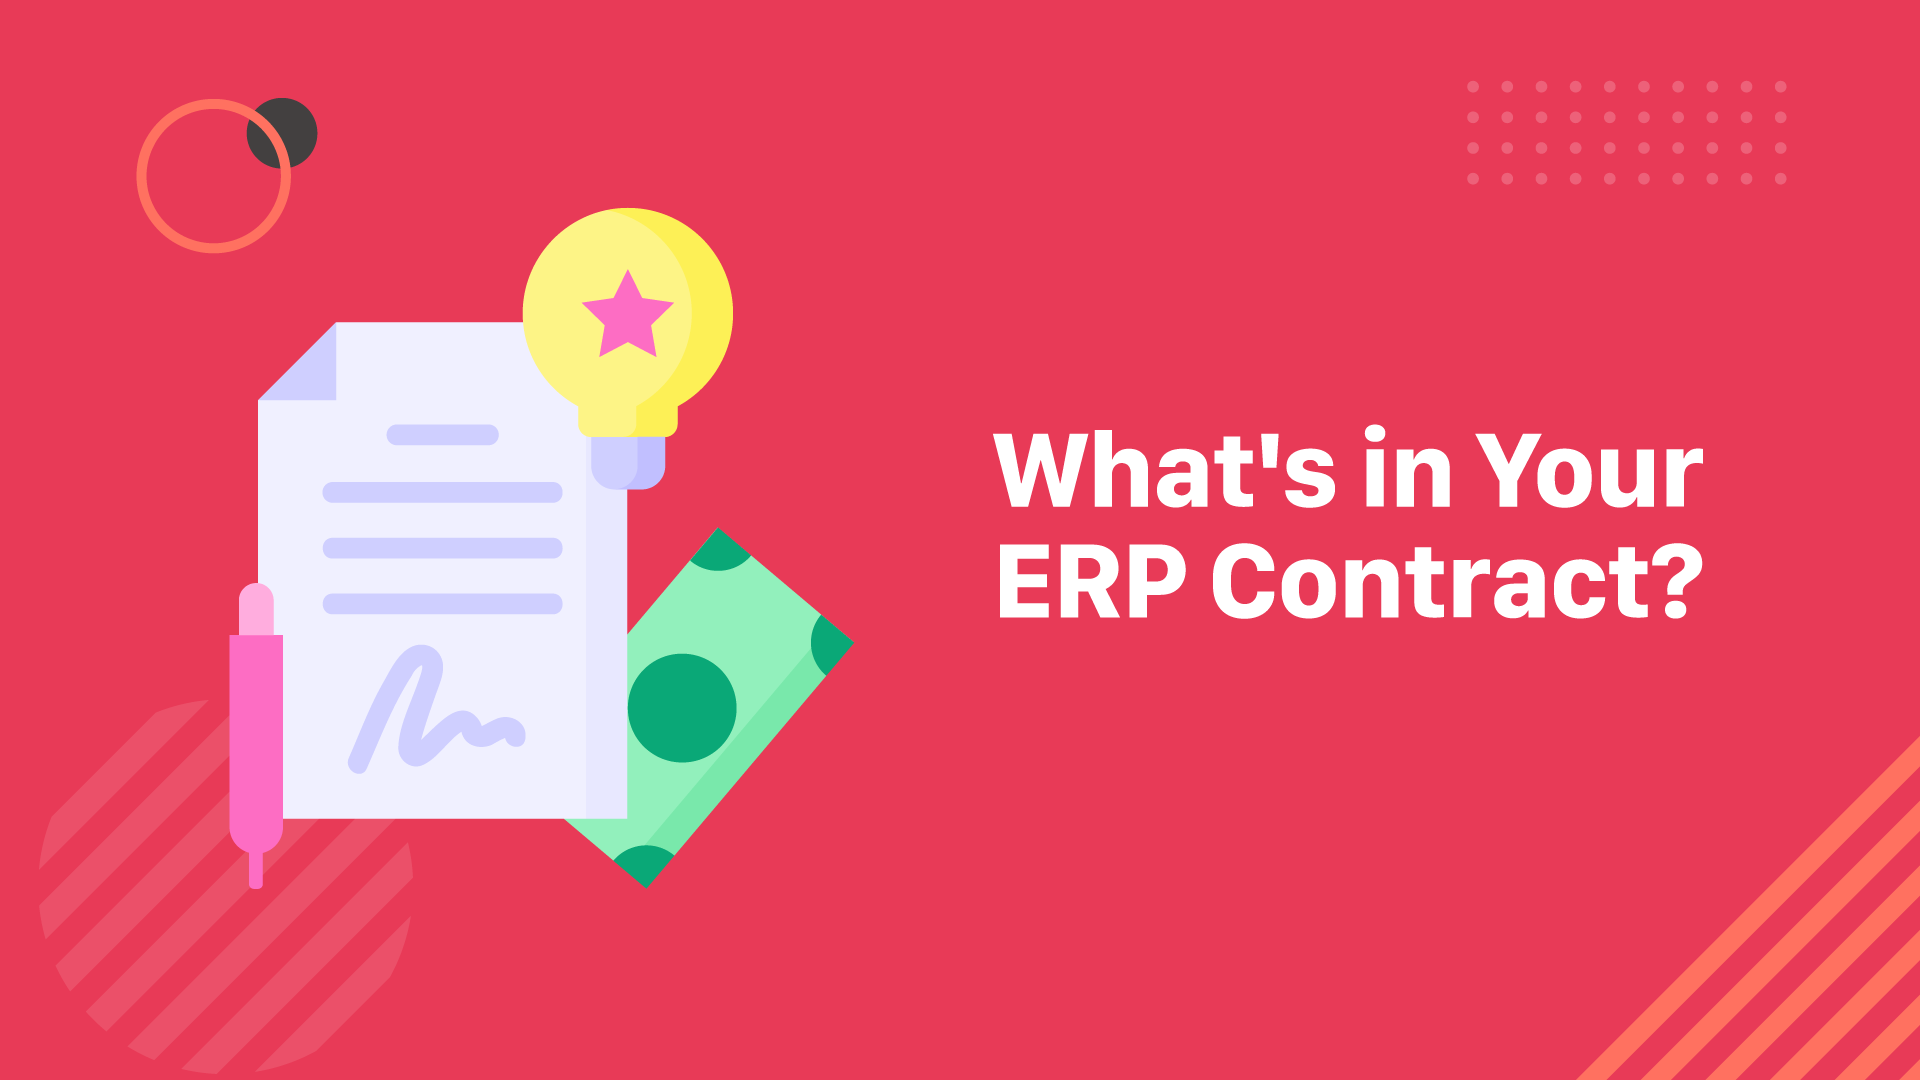 3 ERP & CRM Contract Pitfalls to Watch Out For